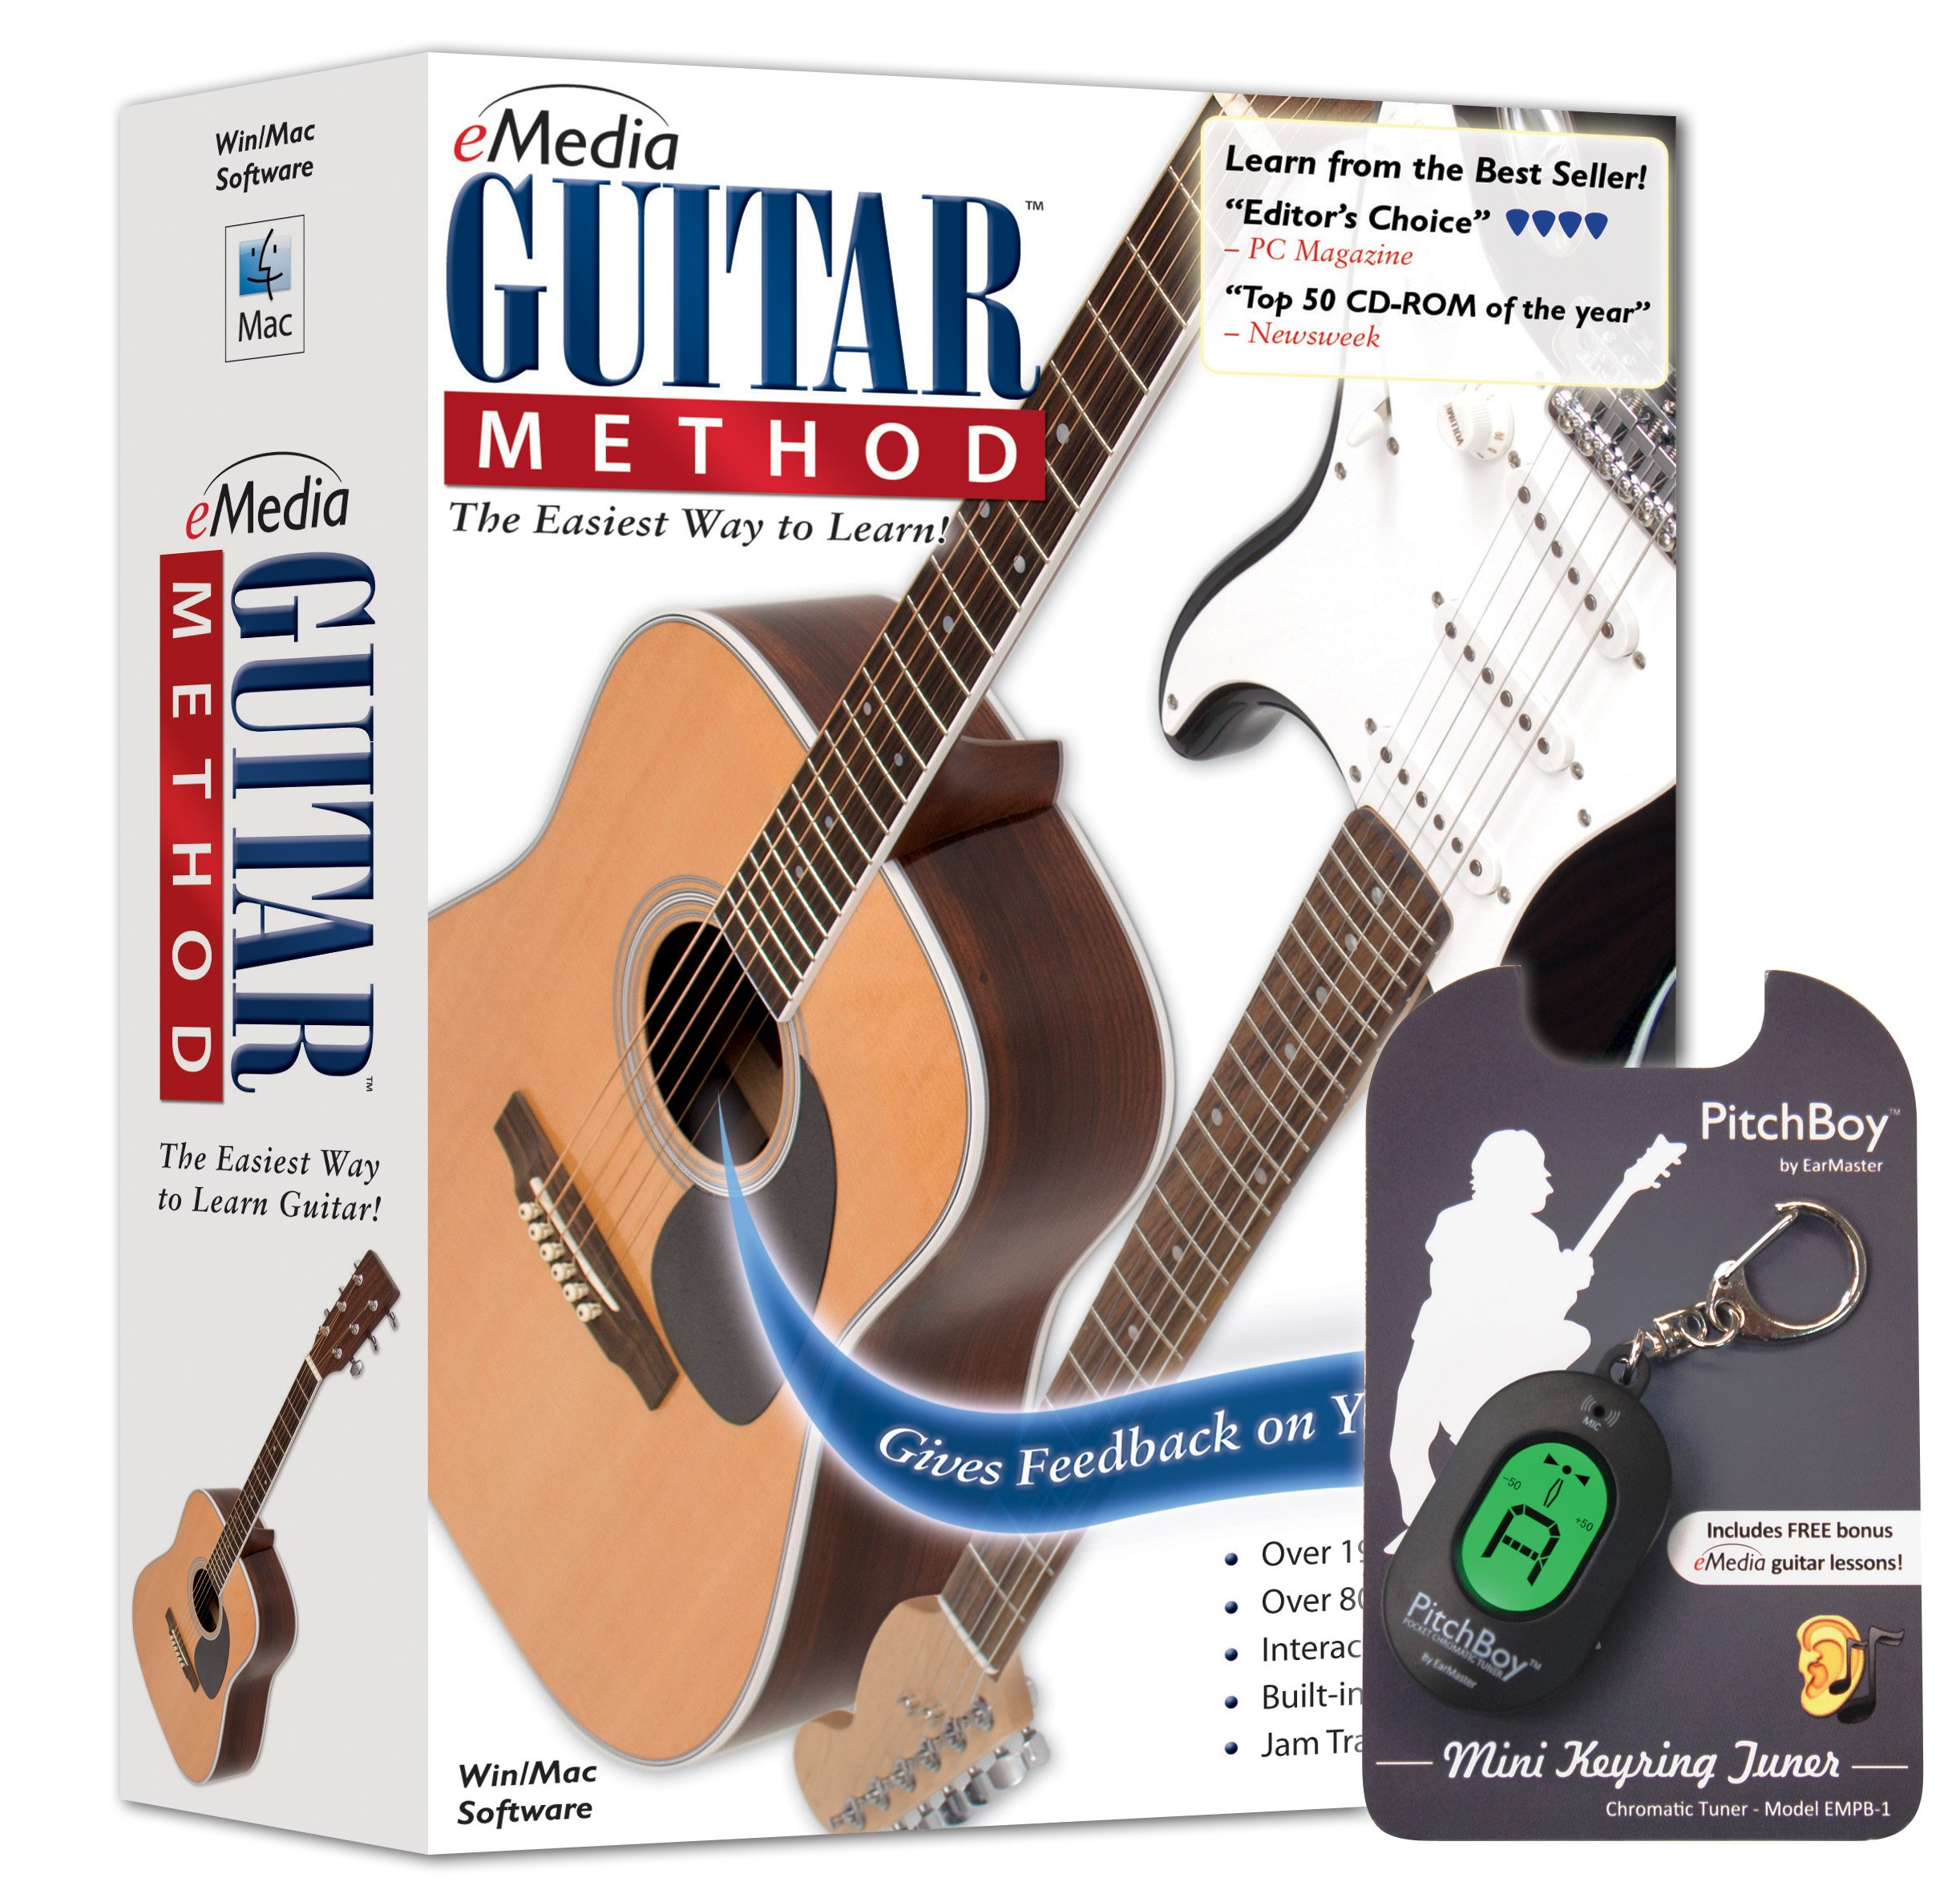 eMedia Guitar Method v6 - with Pitchboy Mini Keyring Tuner (Amazon-Exclusive)